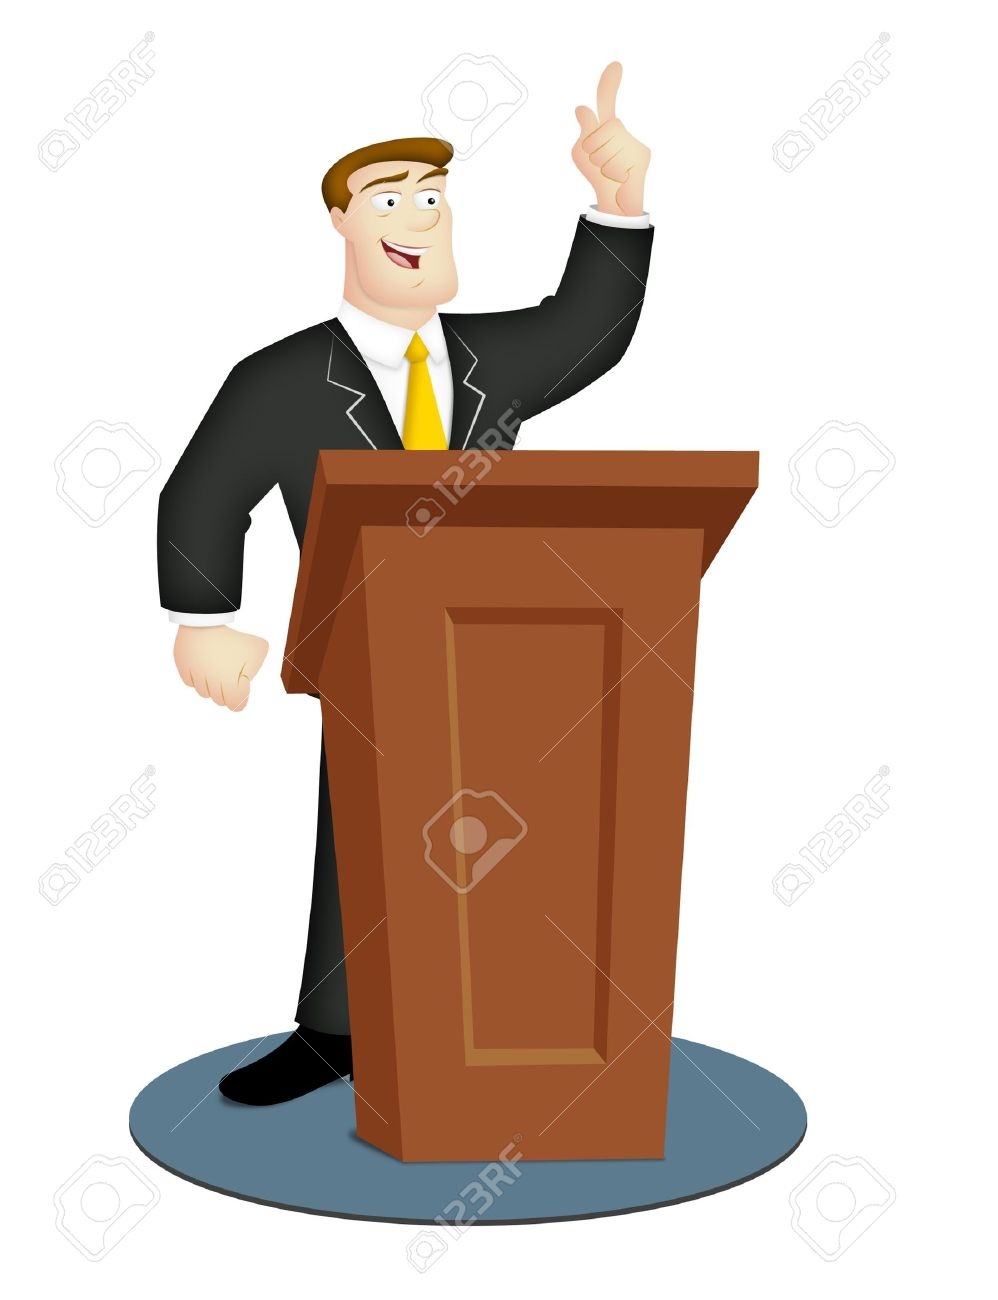 9833050-Cartoon-speaker-in-business-suit-with-rostrum--Stock-Photo-public